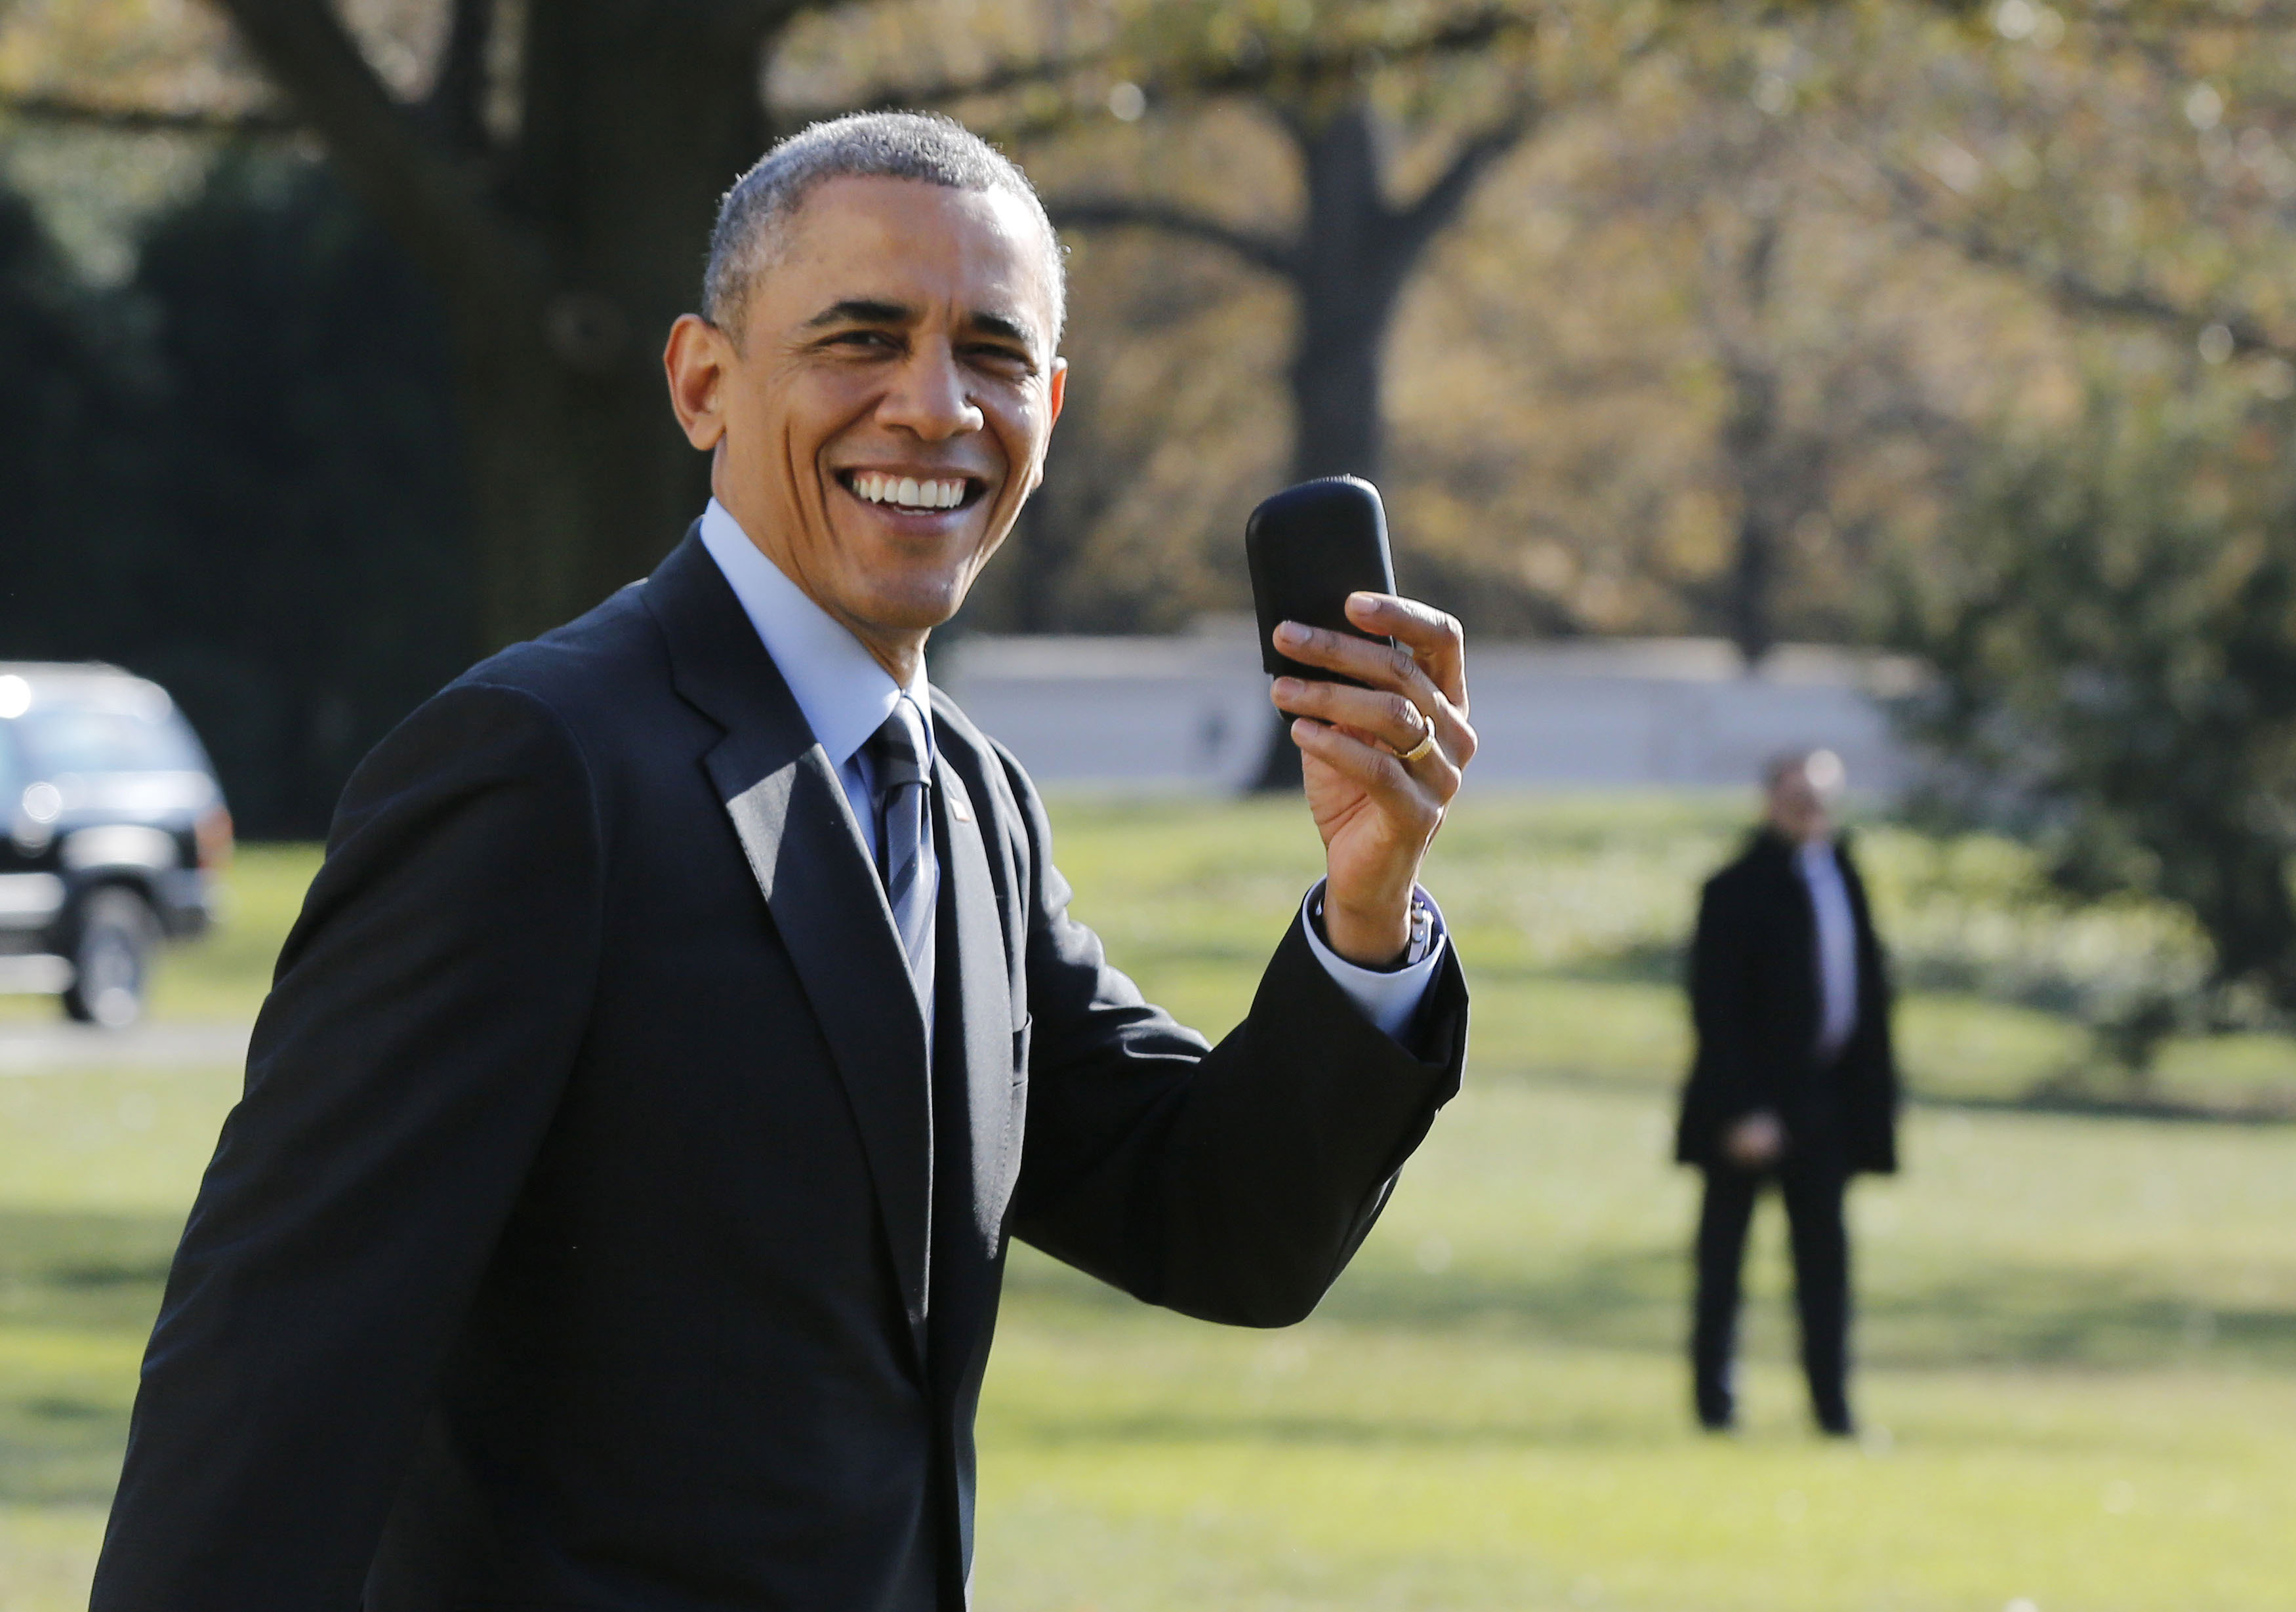 U.S. President Barack Obama holds up his BlackBerry device after he returned inside the White House to retrieve it, after boarding Marine One on the South Lawn of the White House in Washington on Nov. 21, 2014.